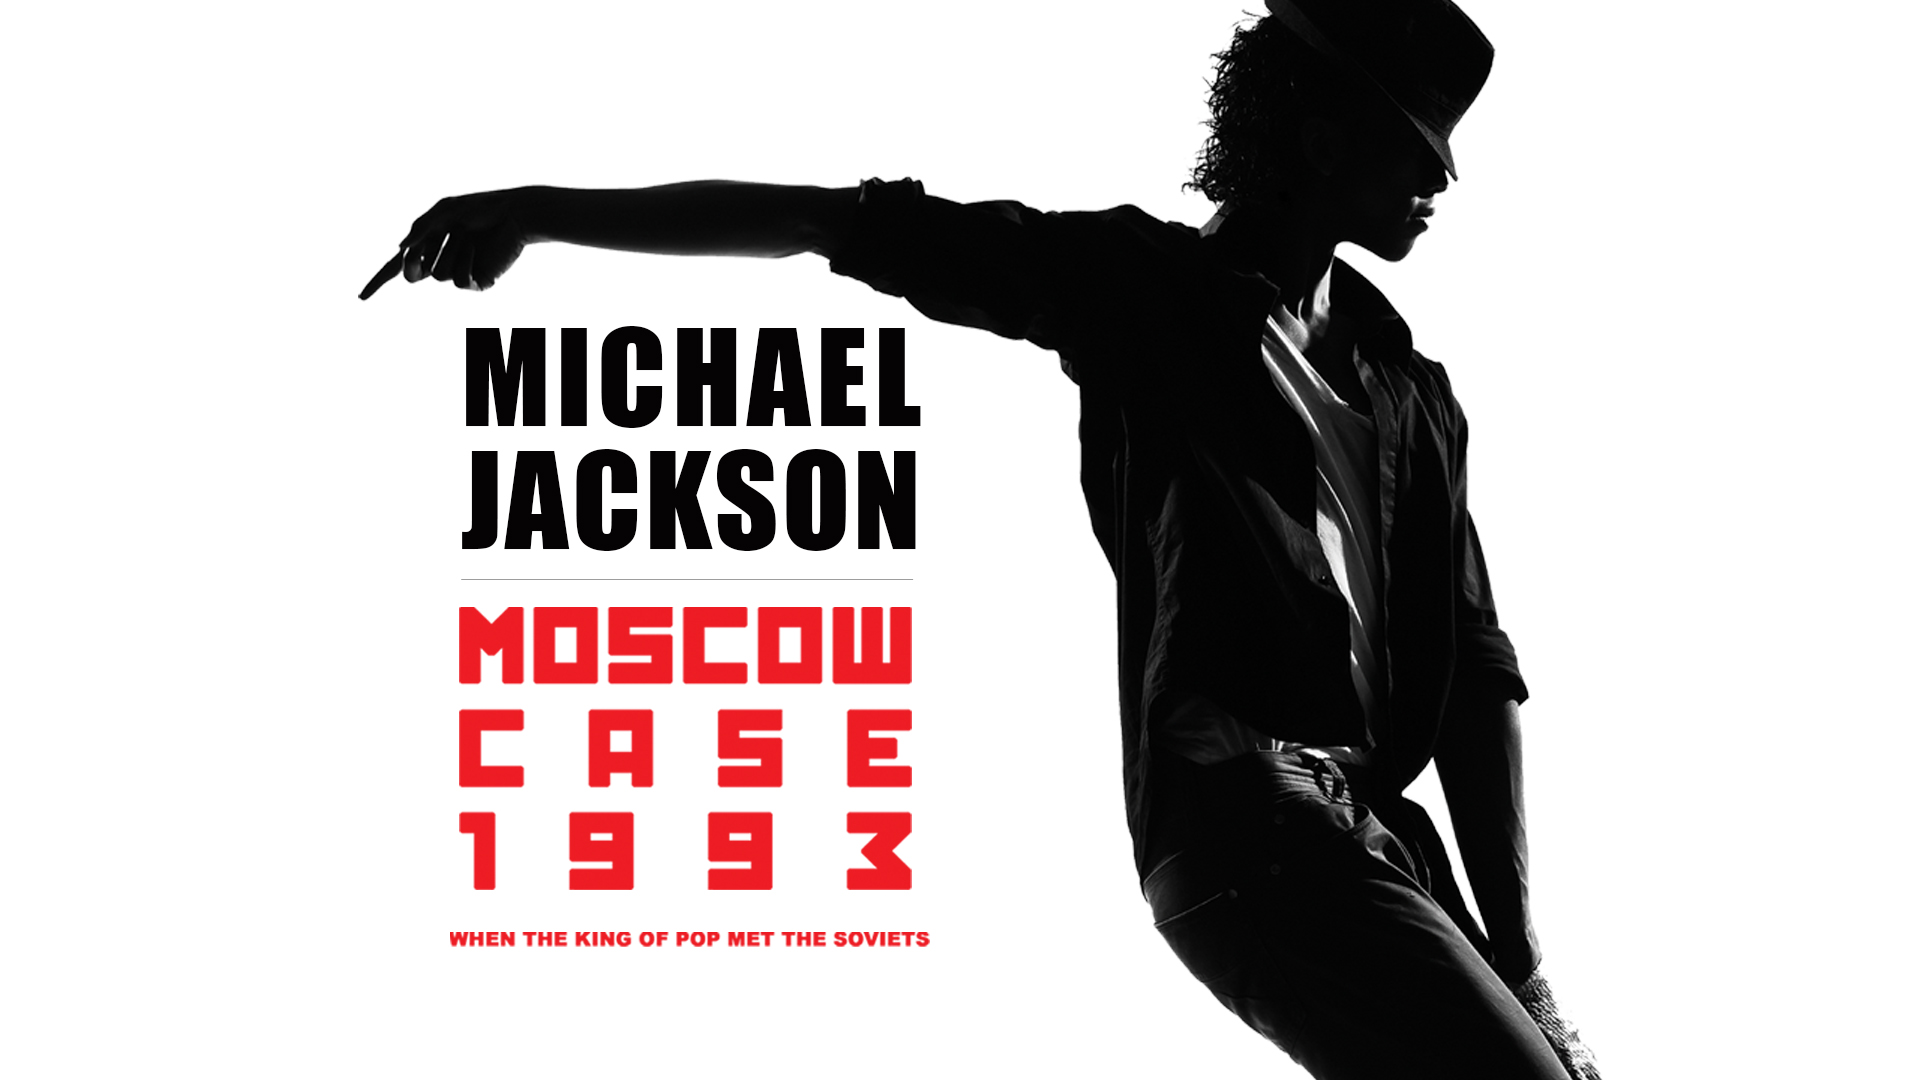 Michael Jackson - Moscow Case 1993: When The King Of Pop Met The Soviets